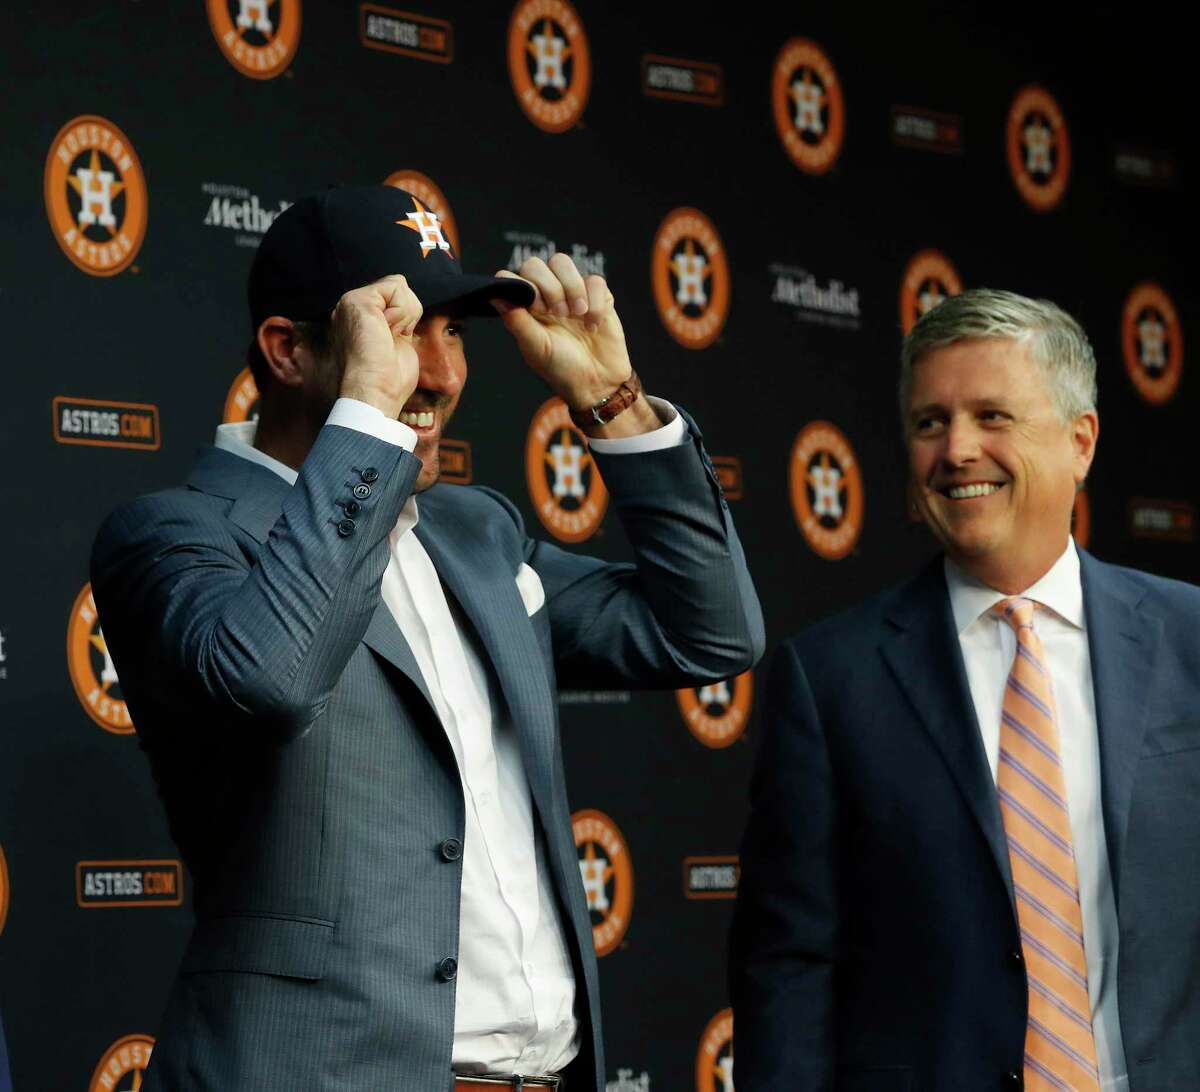 Houston Astros GM Jeff Luhnow and manager A.J. Hinch officially introduced pitcher Justin Verlander to the media before the start of an MLB baseball game at Minute Maid Park, Sunday, Sept. 3, 2017, in Houston, after he was acquired Thursday.